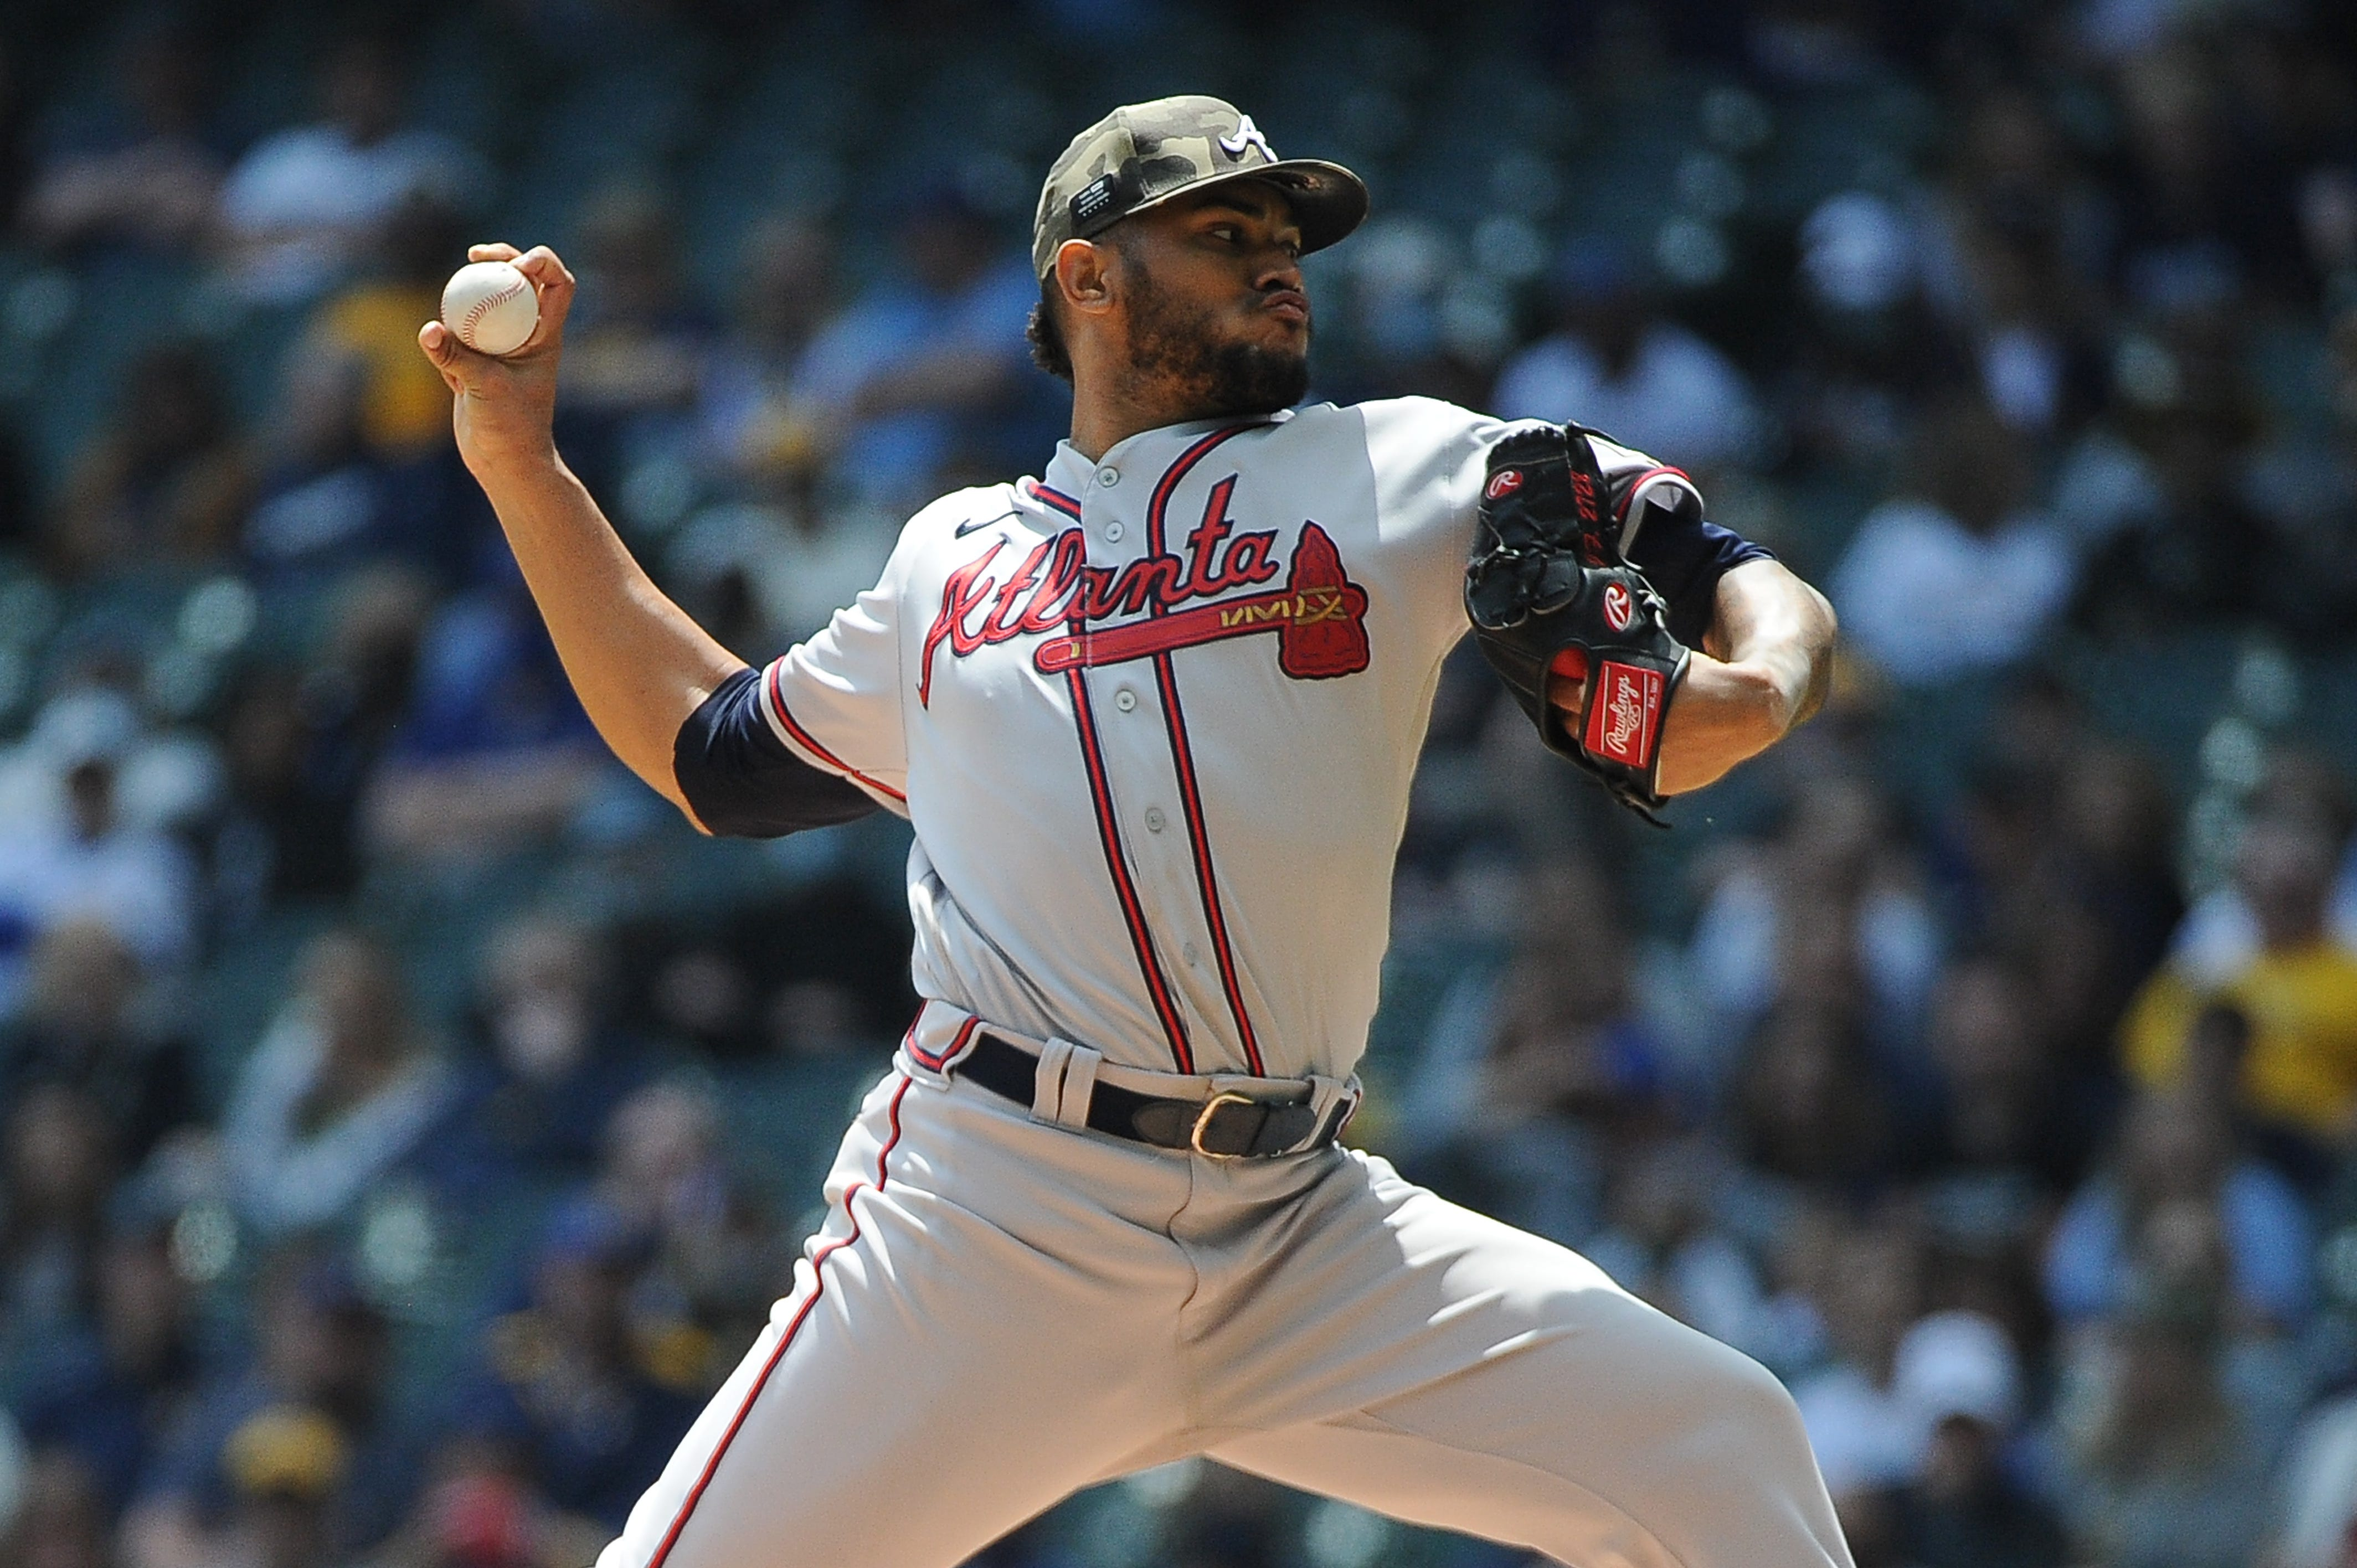 Braves pitcher Huascar Ynoa suffers broken hand from punching dugout bench